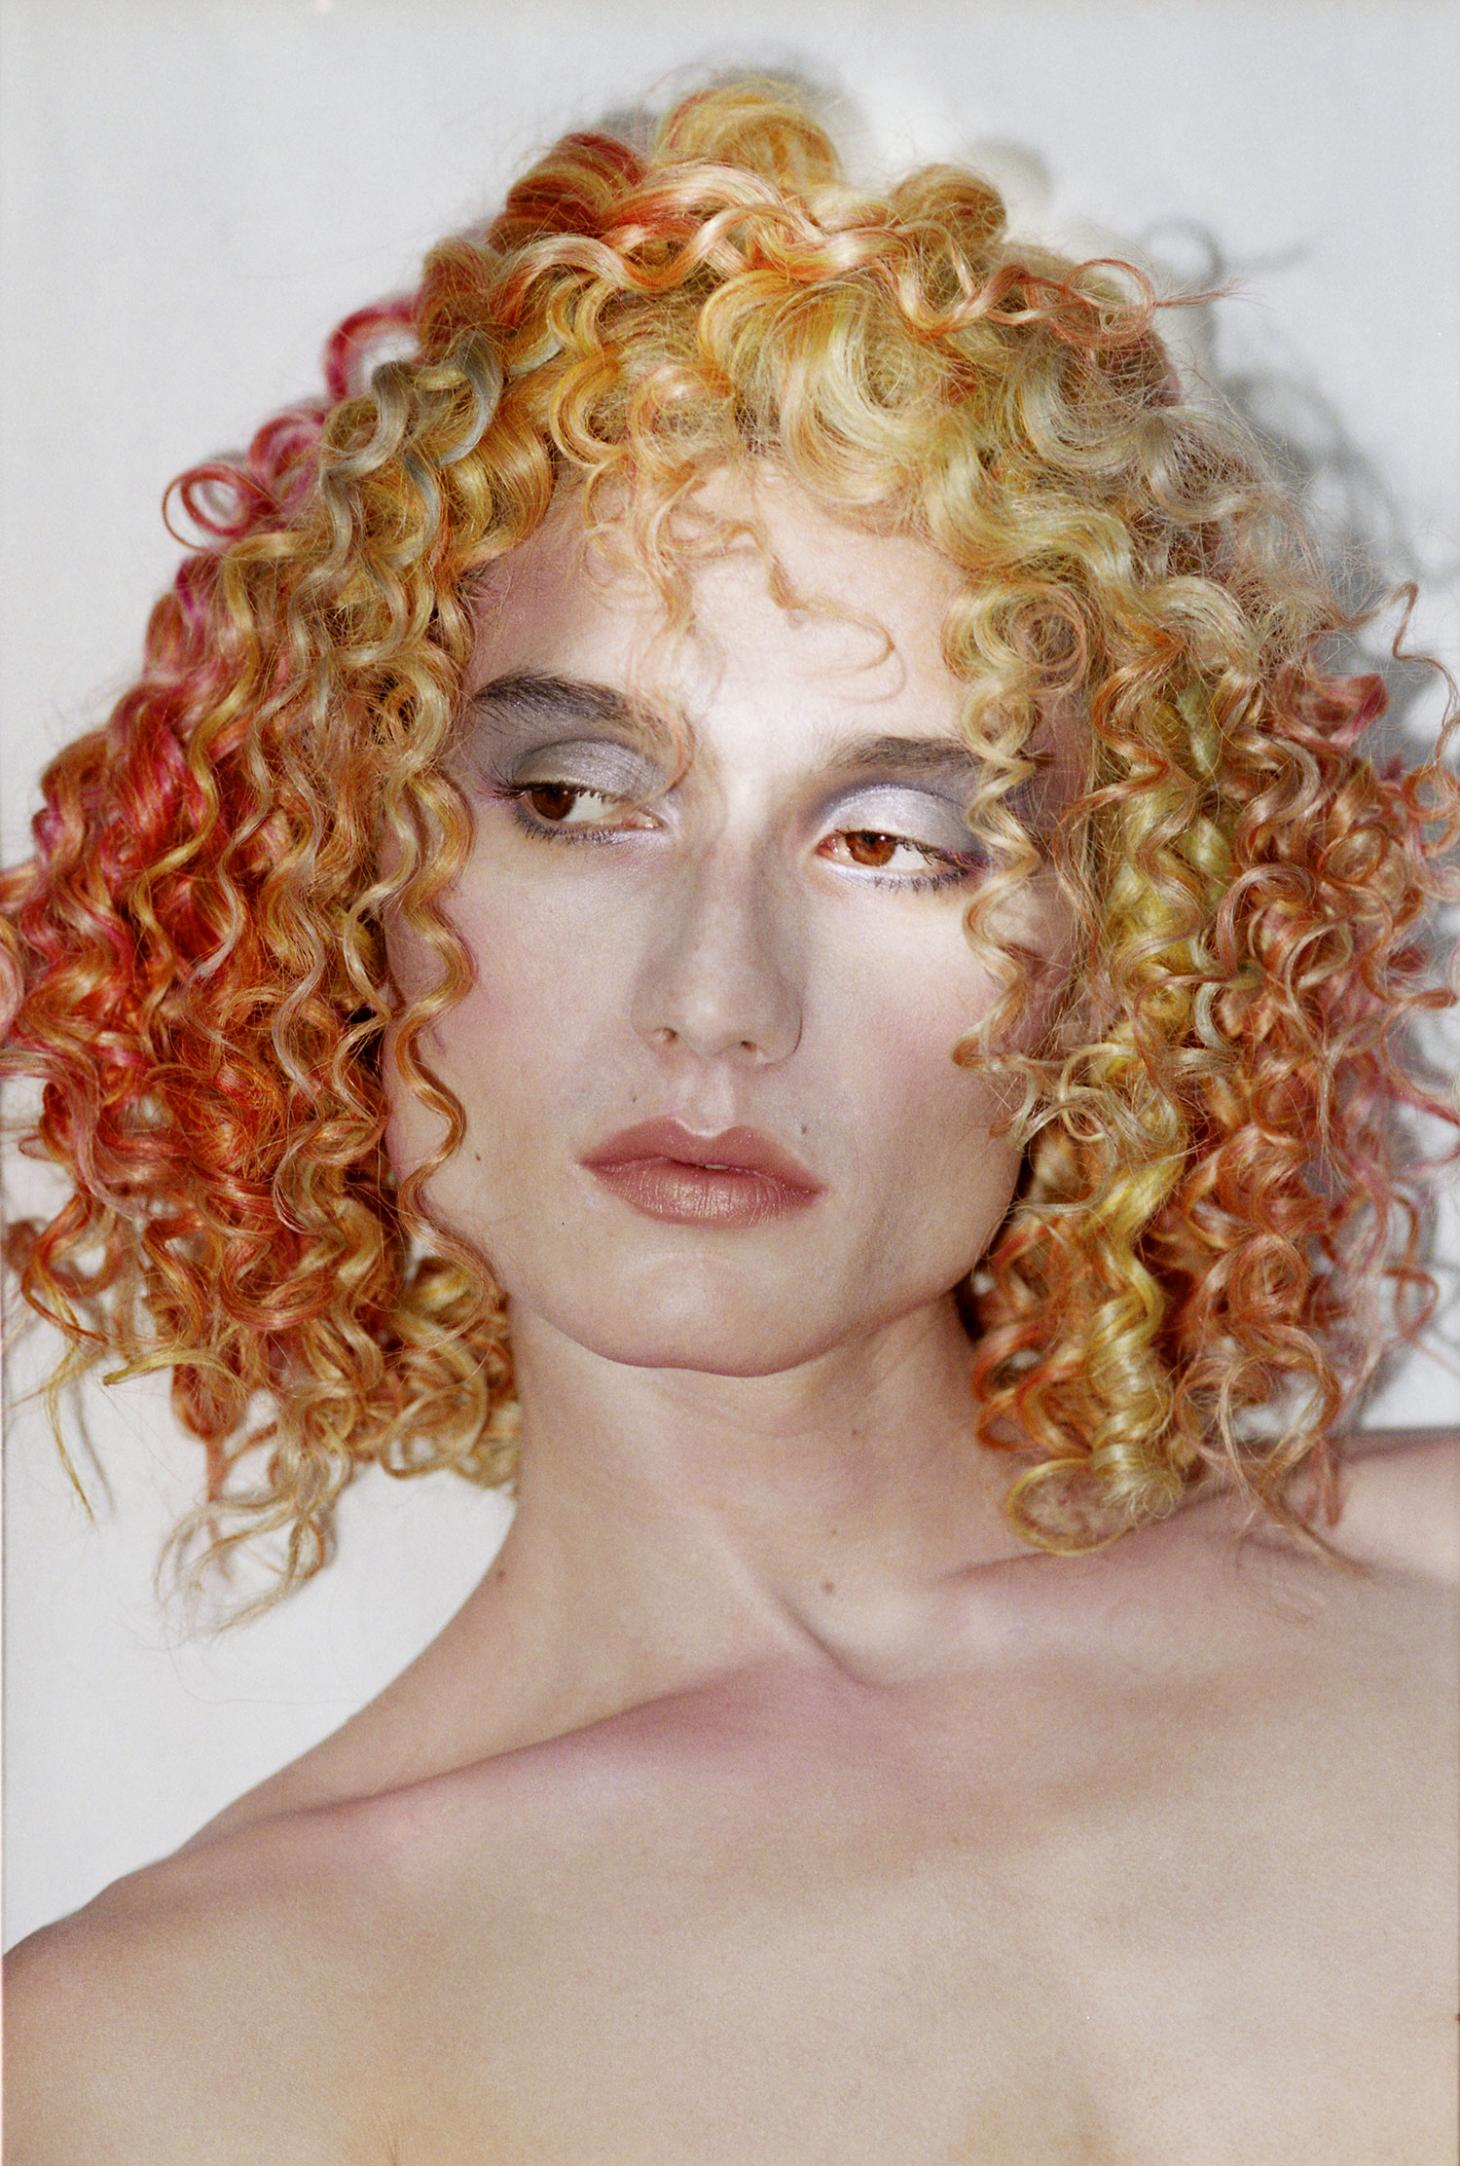 man wearing orange curly haired wig